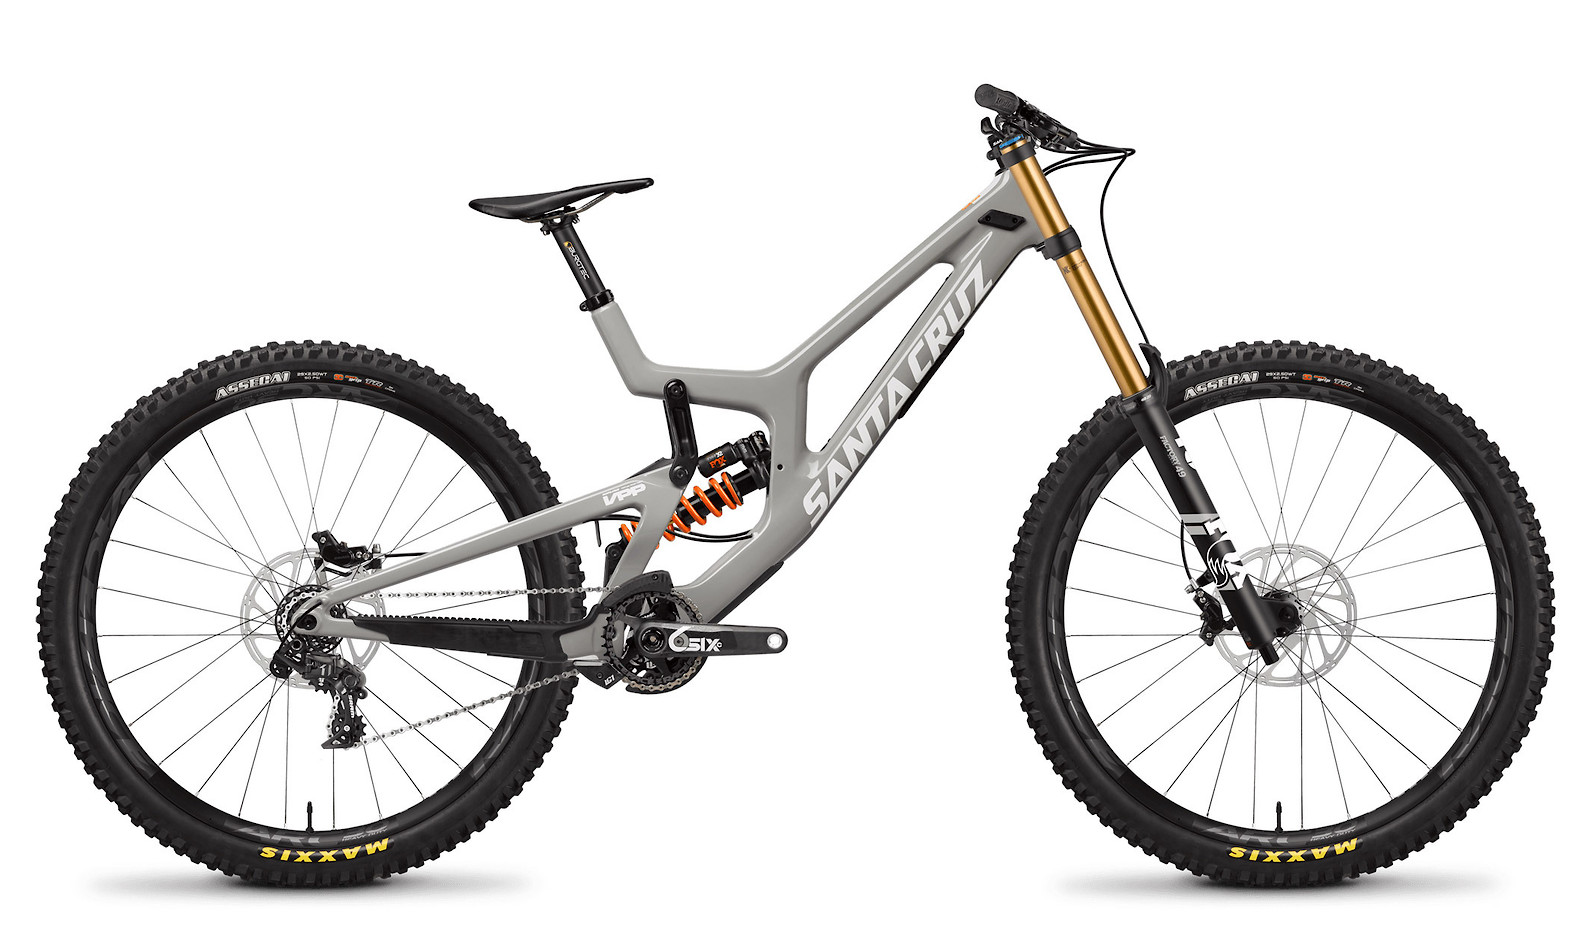 2019 Santa Cruz V10 Carbon CC X01 29 Bike